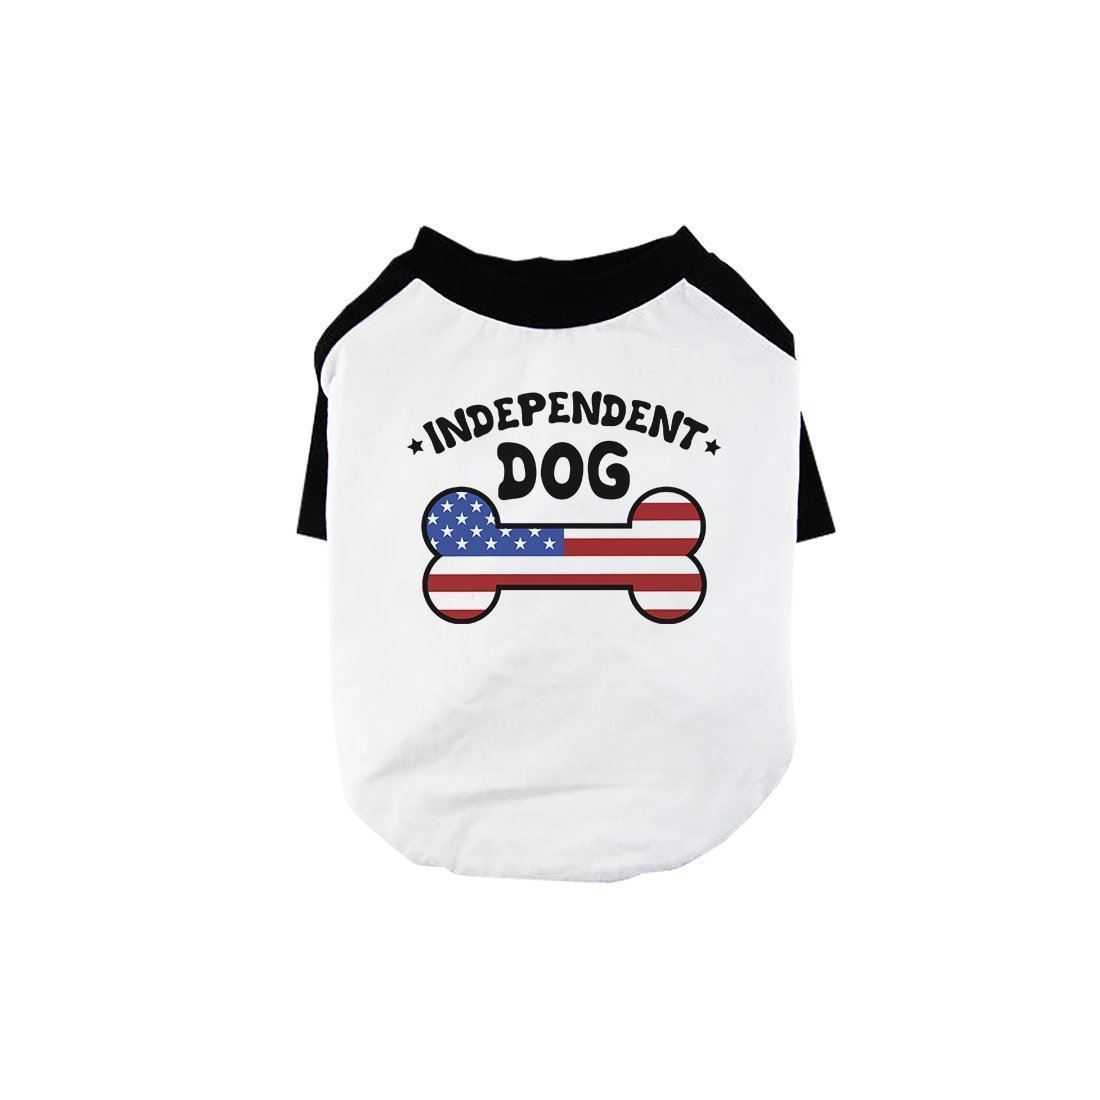 Independent Dog Cute Pet Baseball Shirt for Small Dogs 4th of July